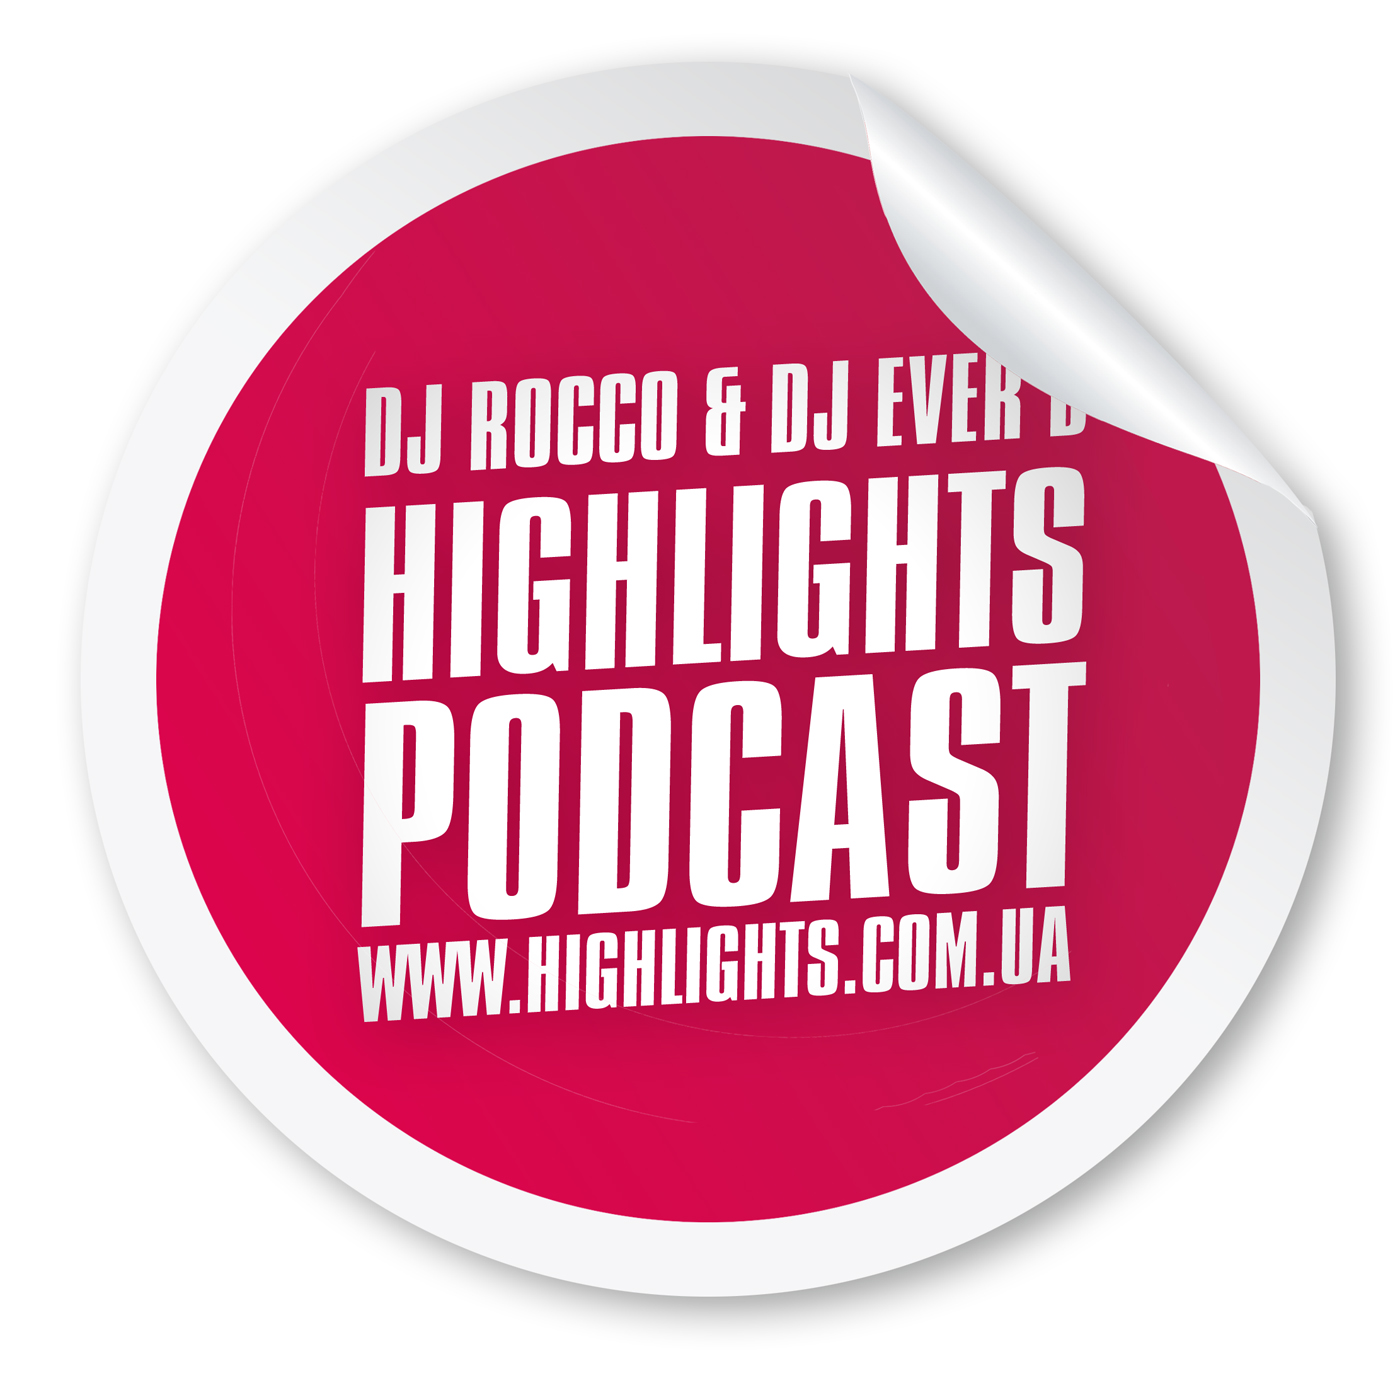 DJ Rocco & DJ Ever B Official Podcast